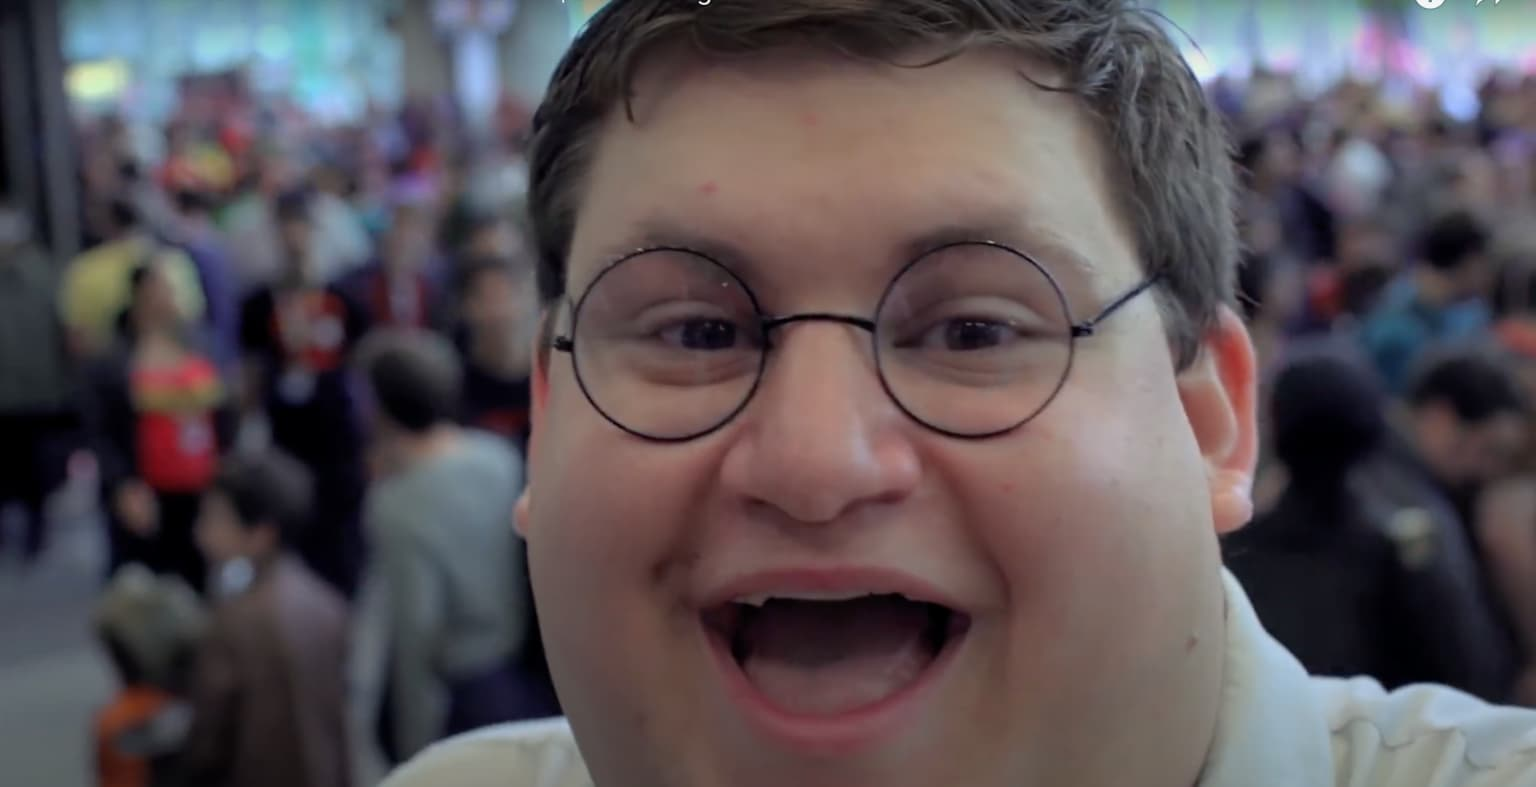 Real Life Peter Griffin